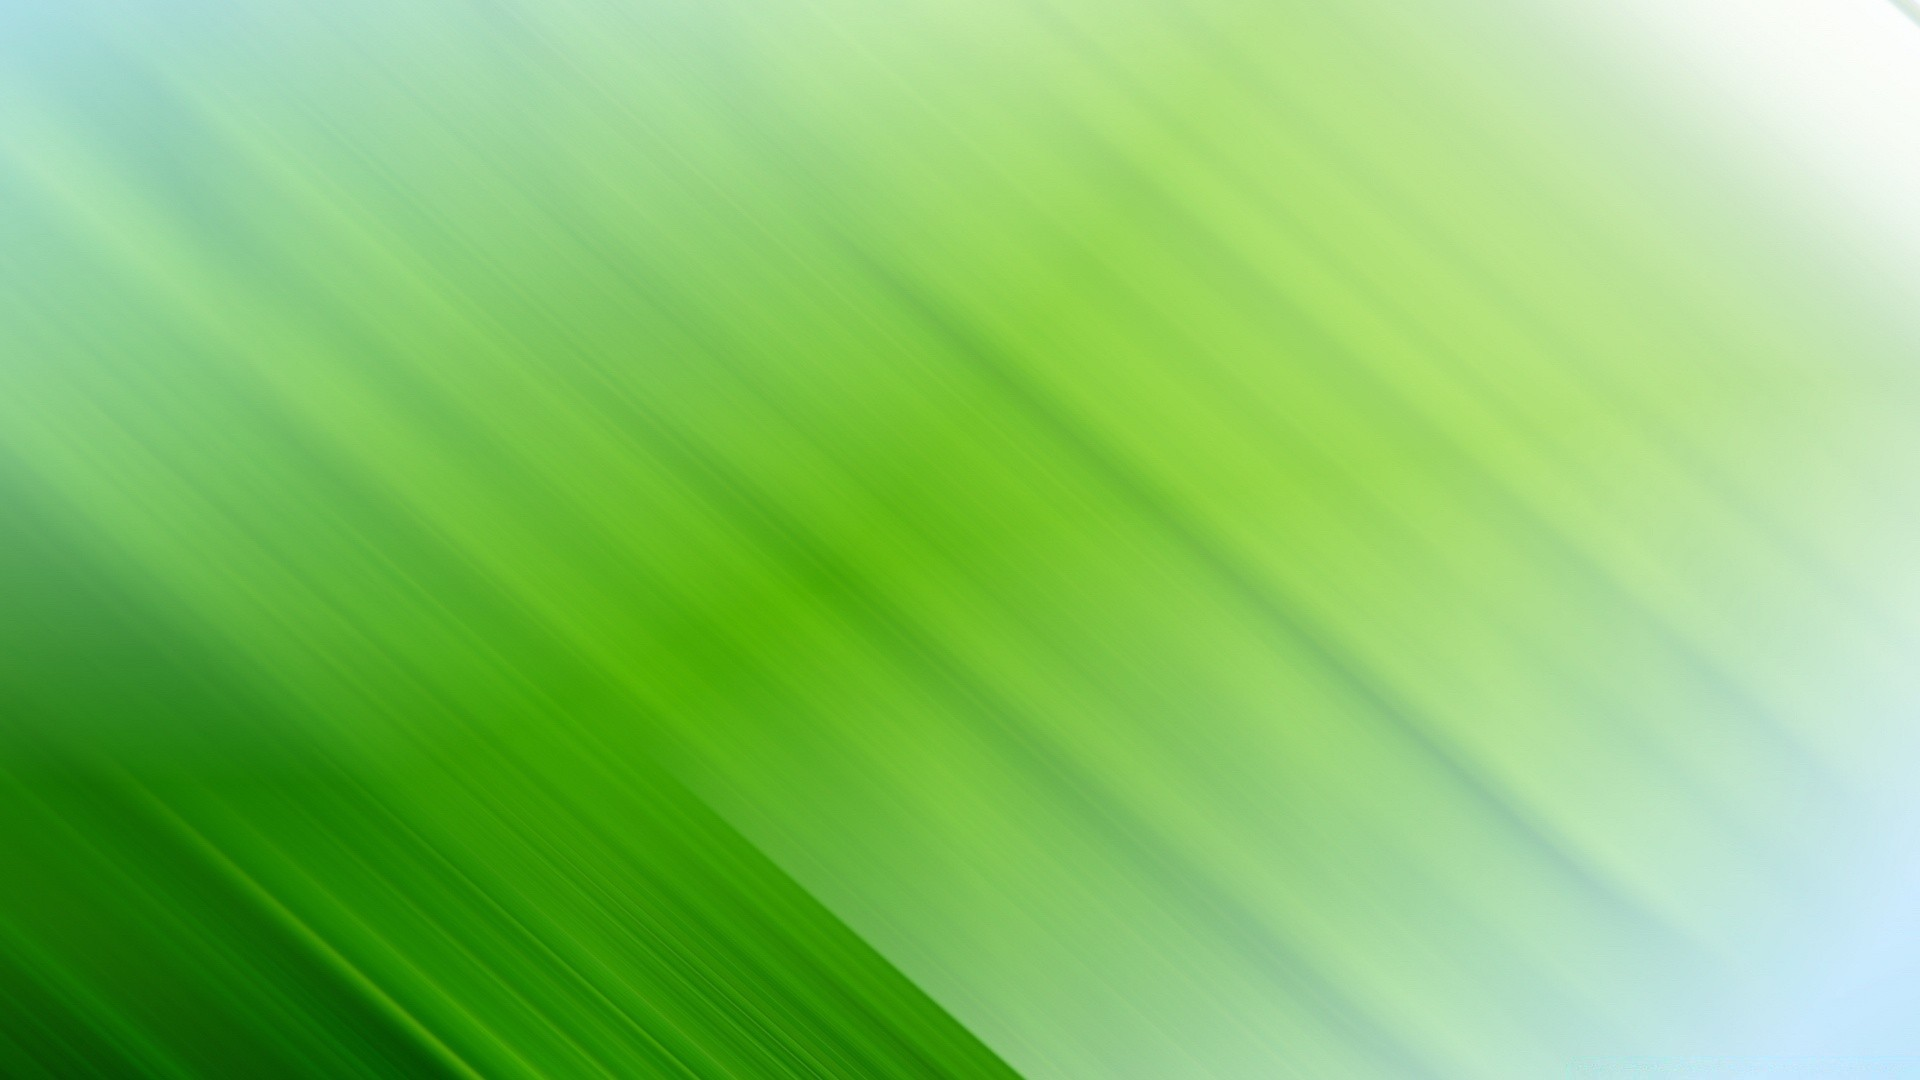 Lime Green Android Wallpapers For Free